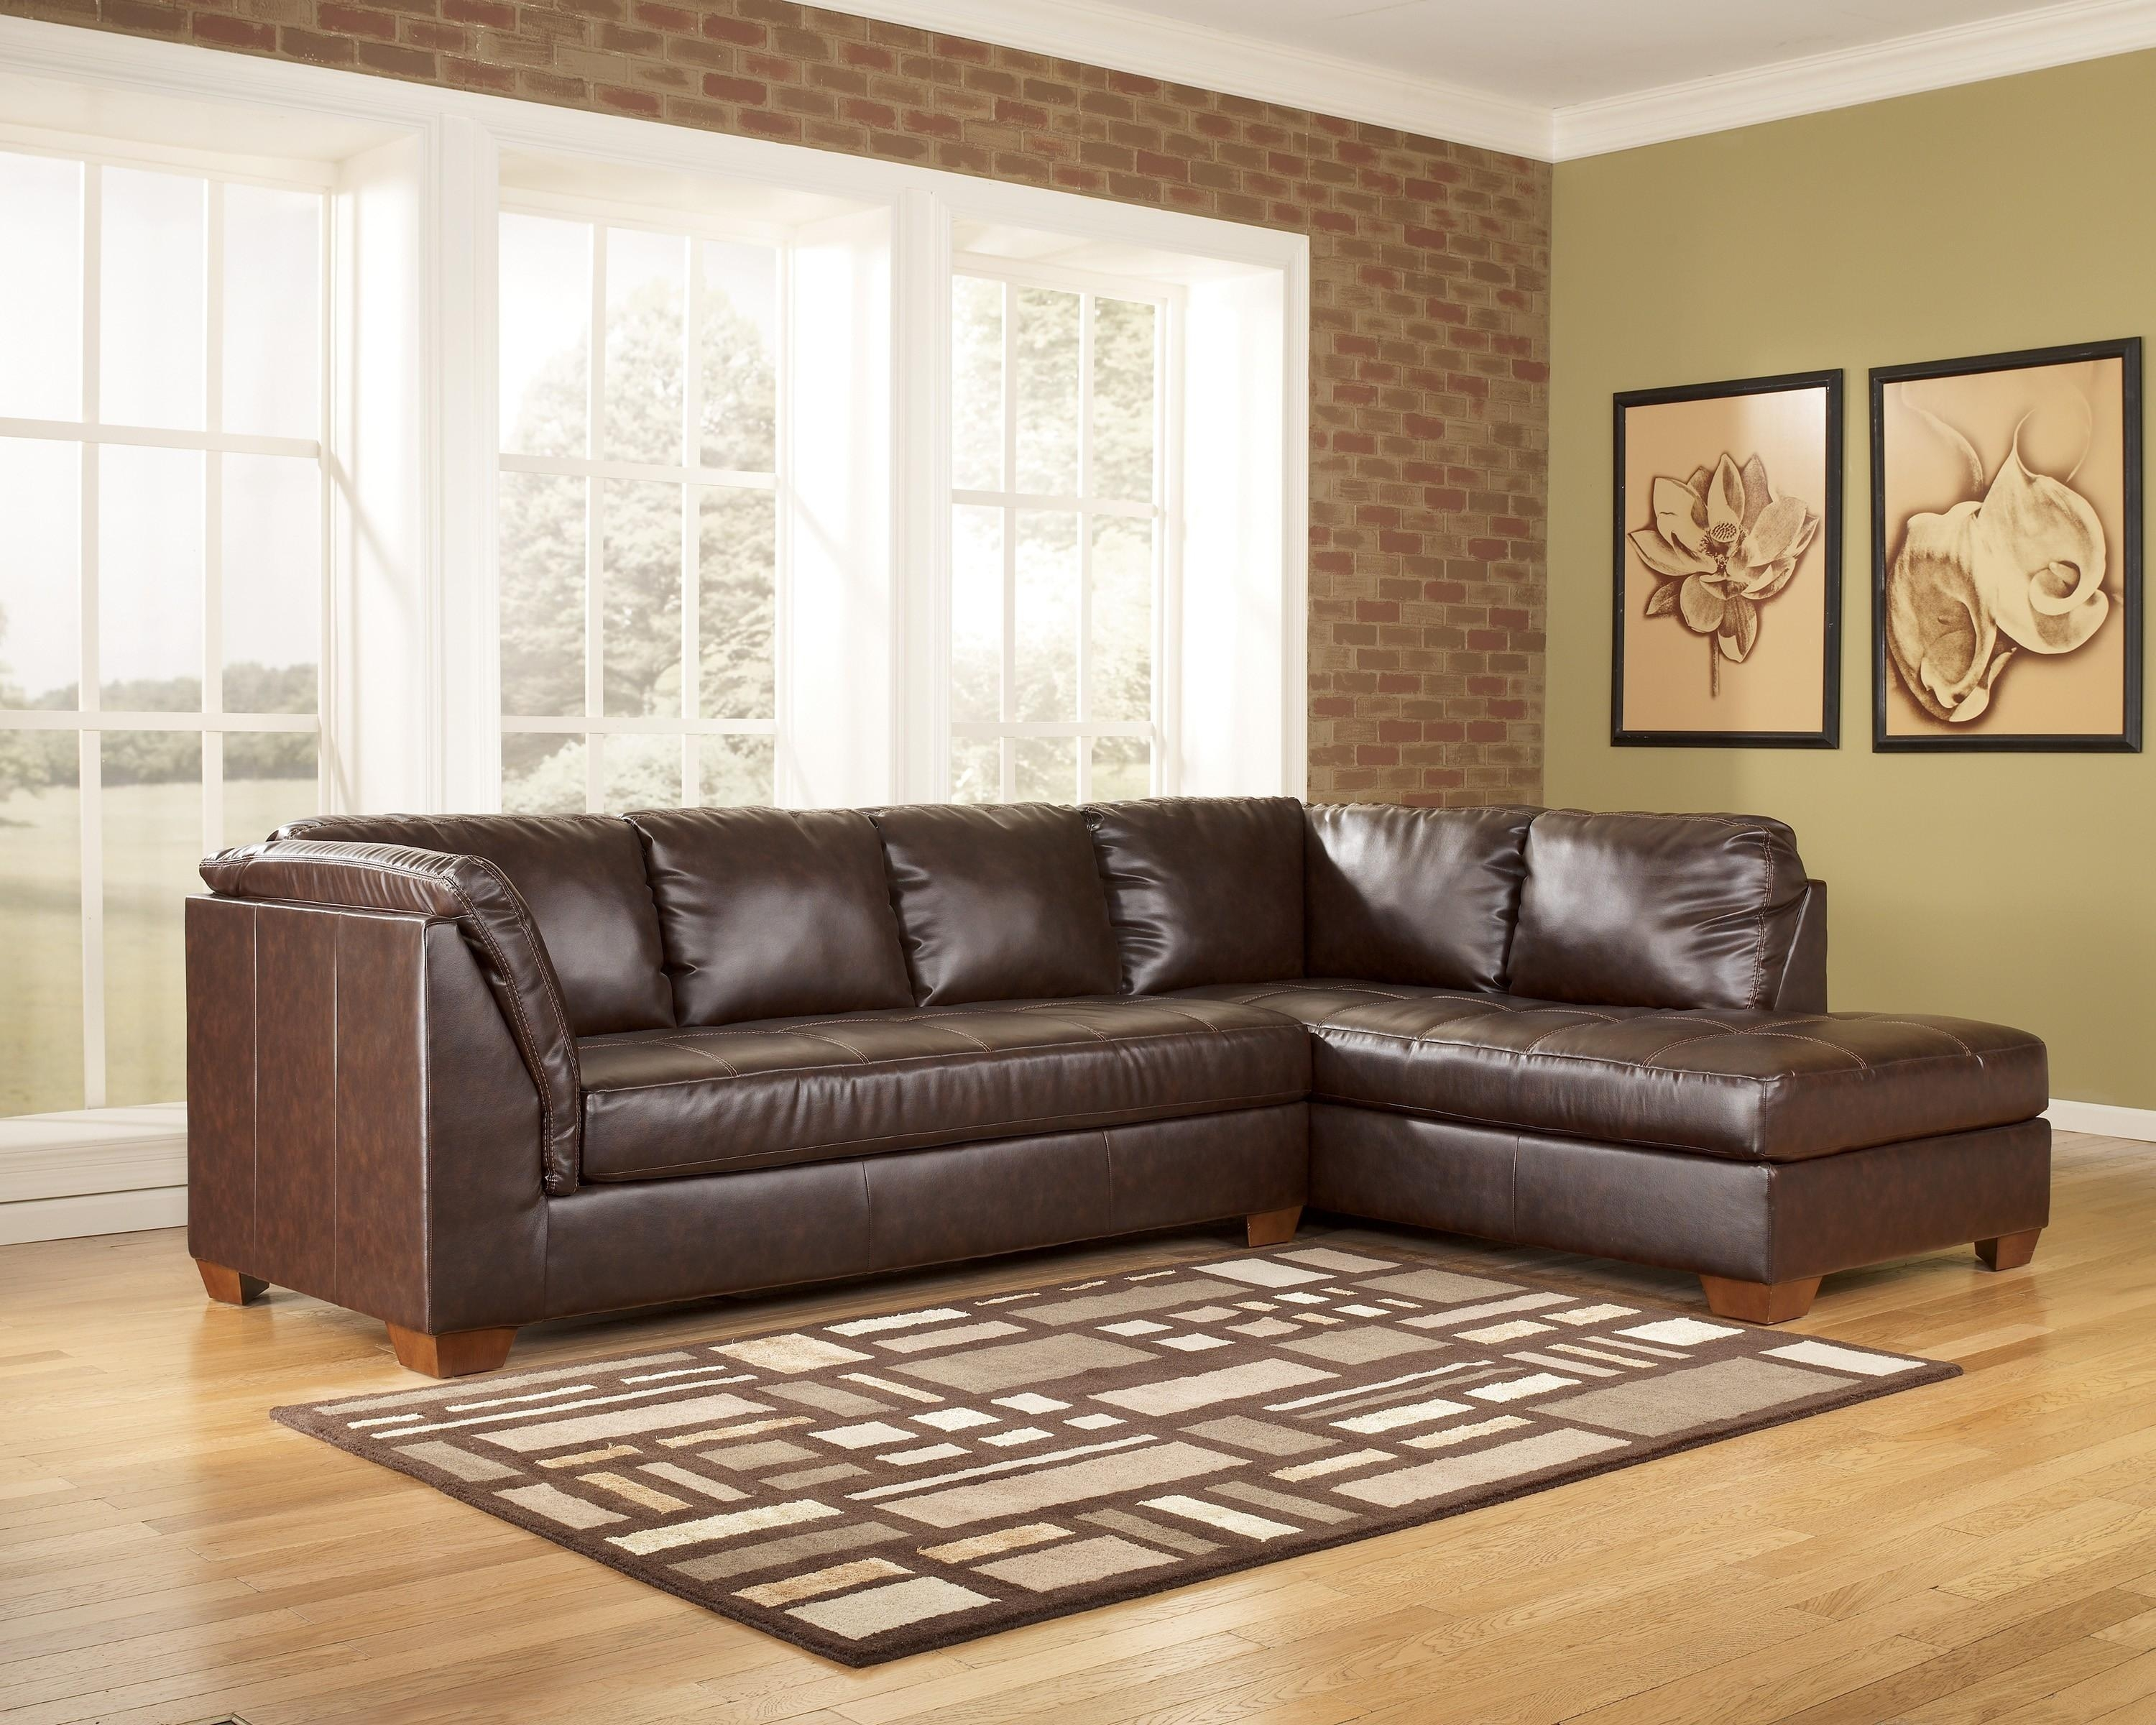 20 Top Western Style Sectional Sofas